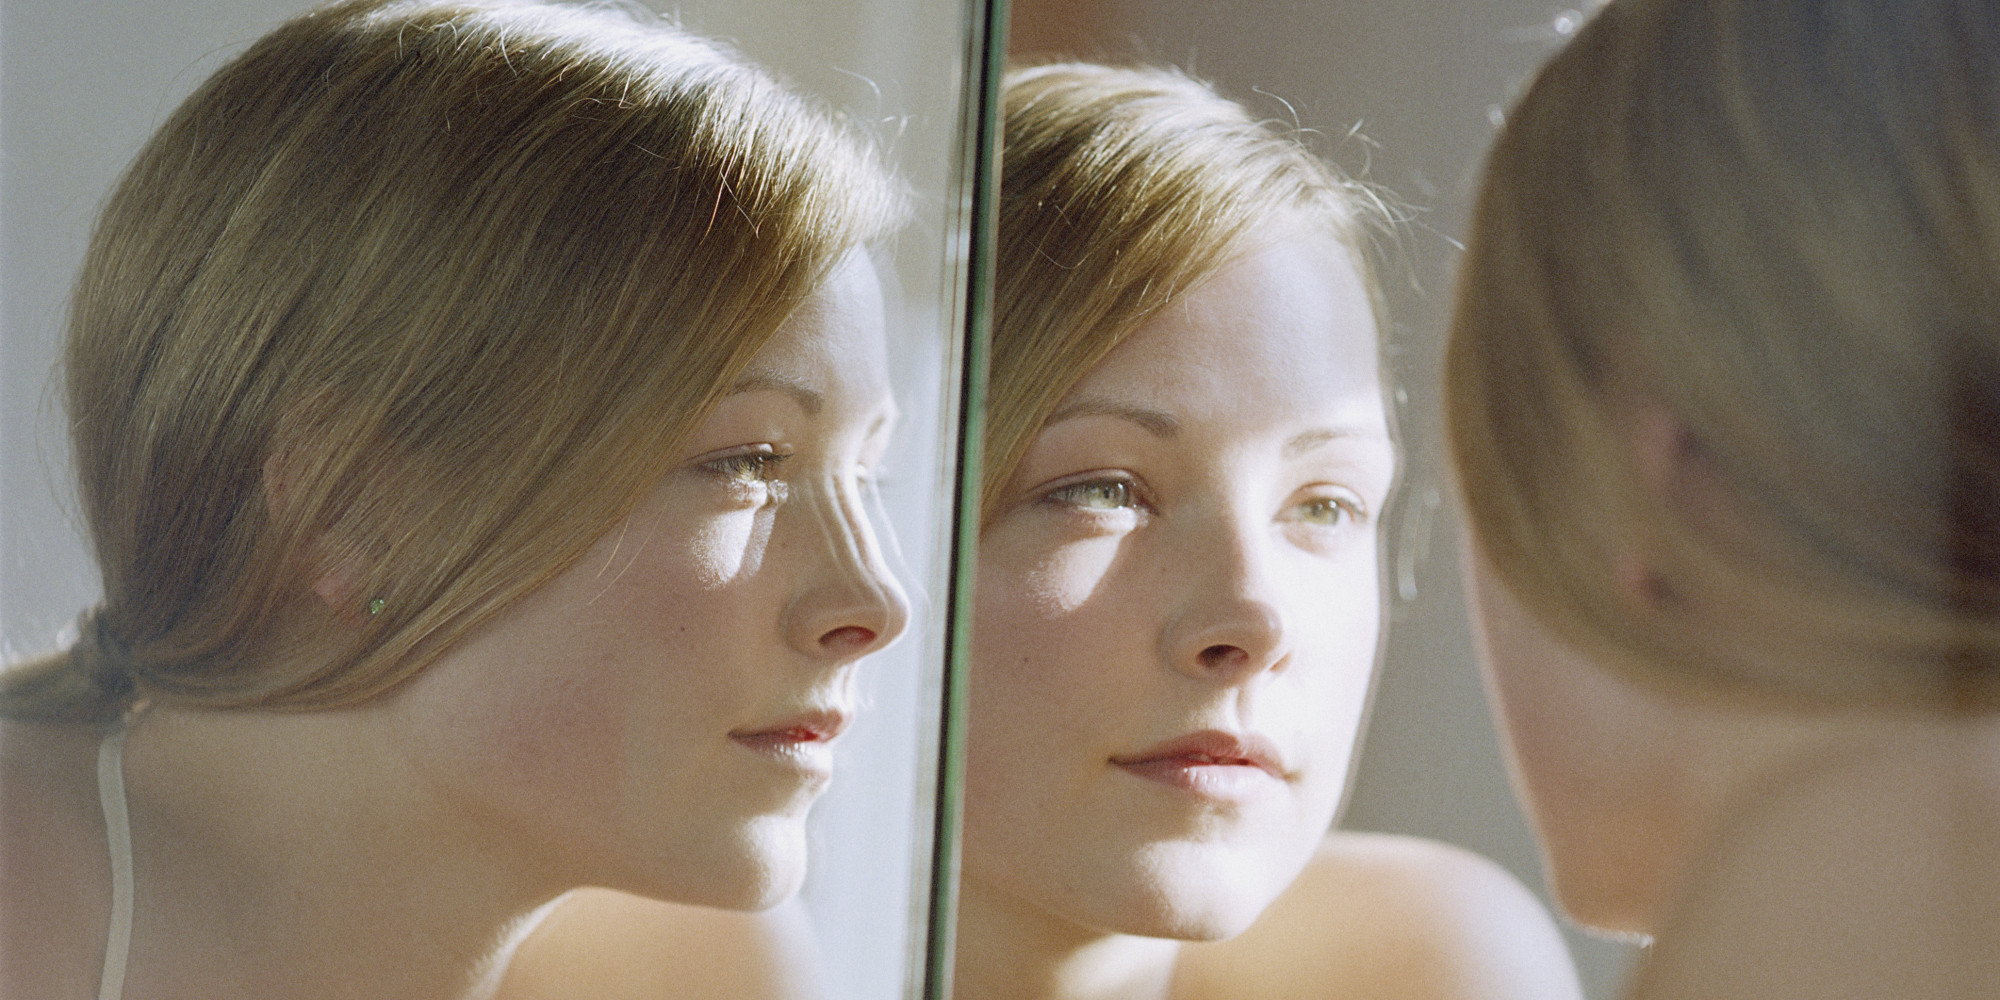 insecure person looking in mirror. insecure person looking in mirror girl l